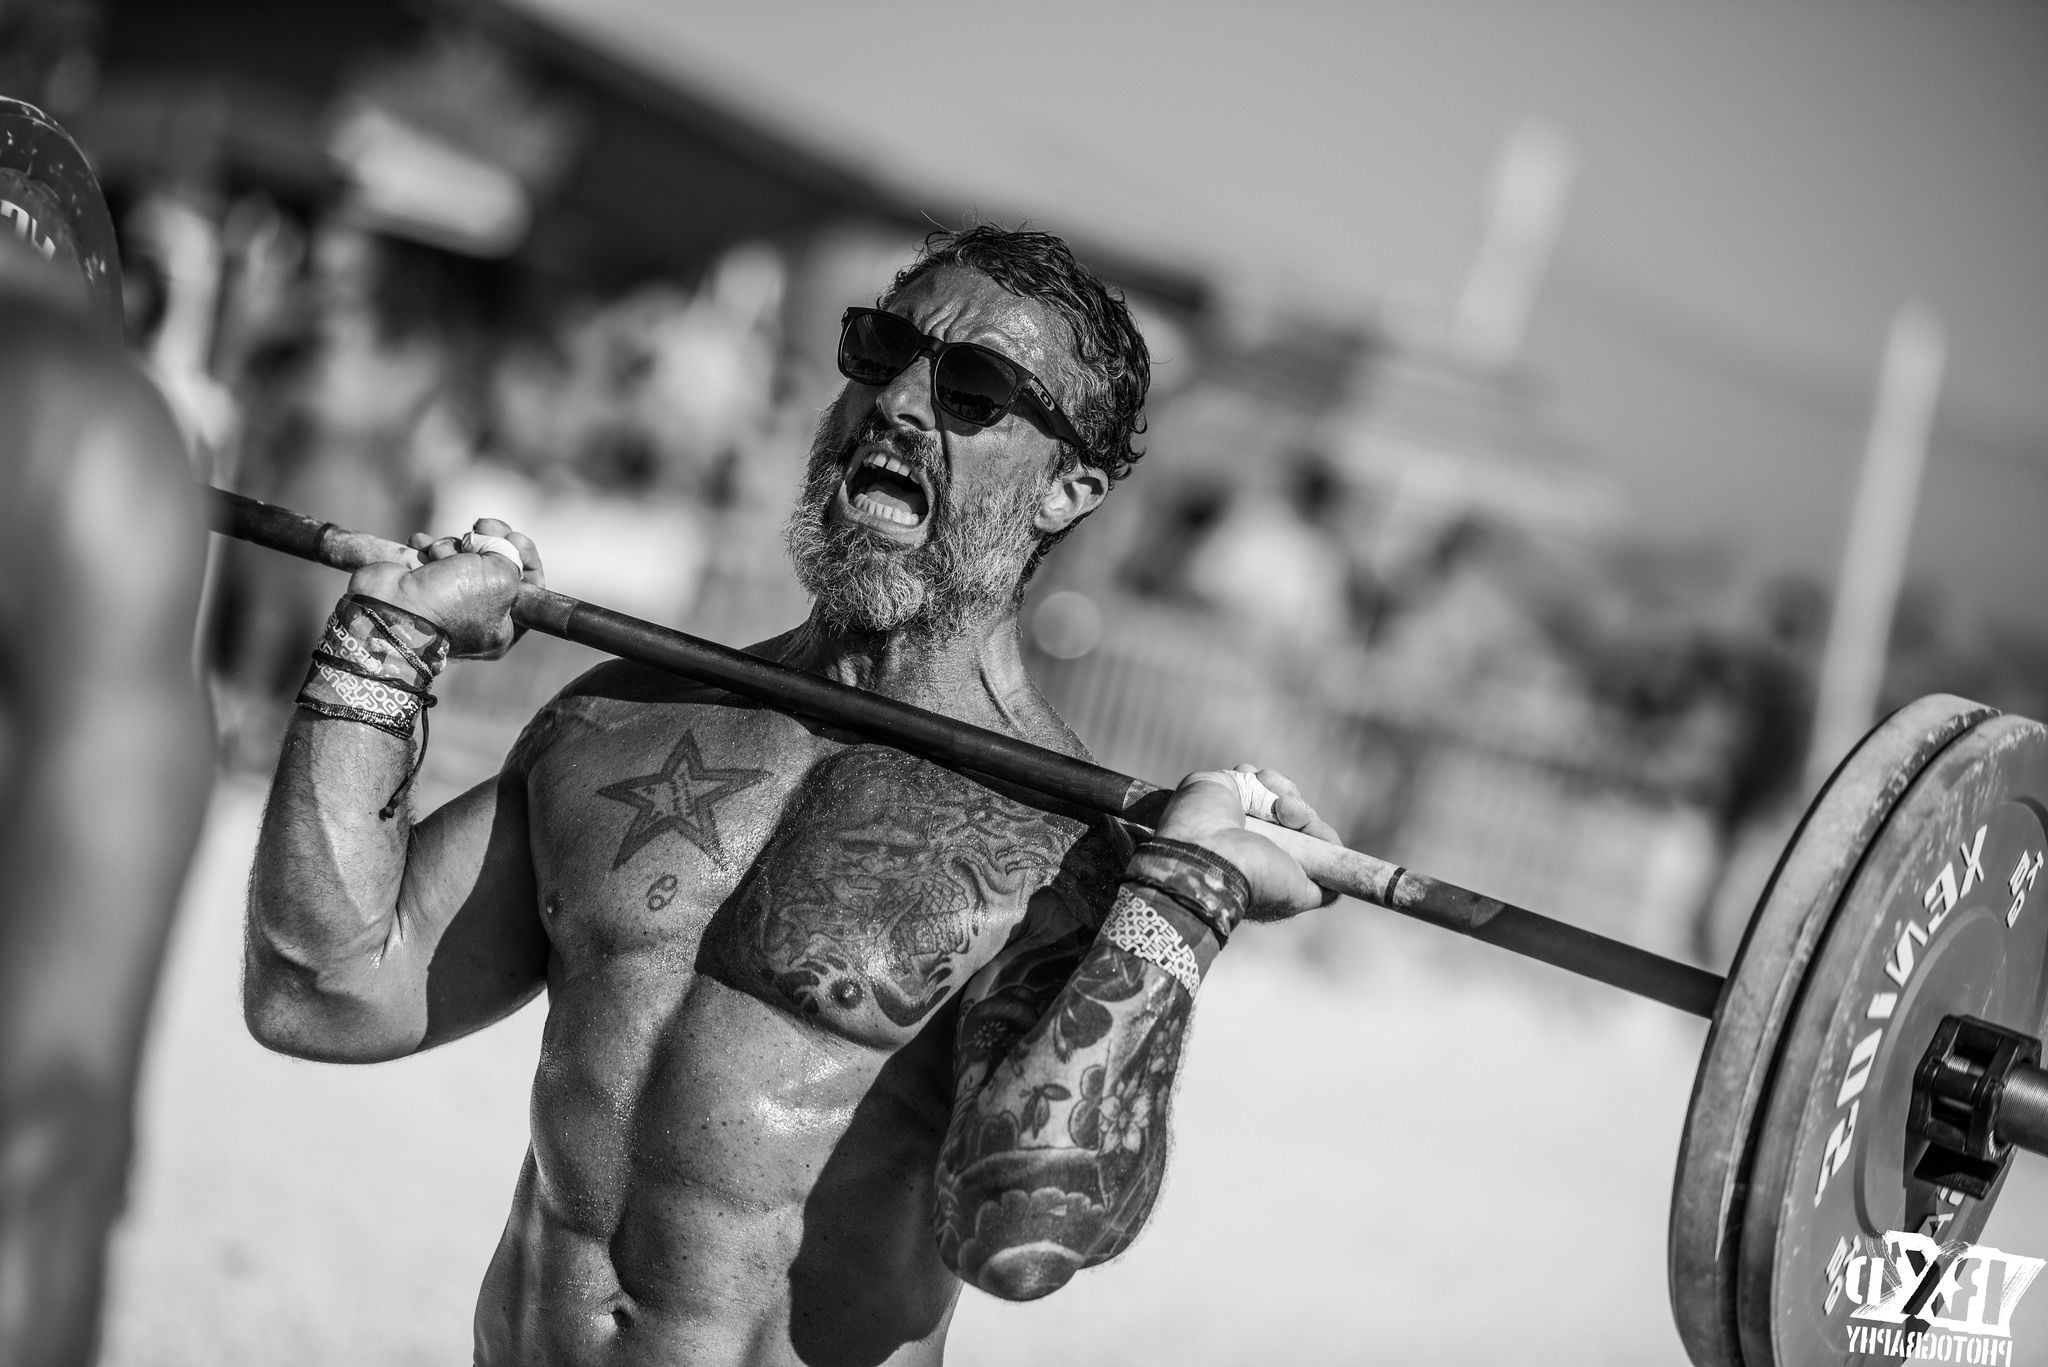 Image of Barbell strongman